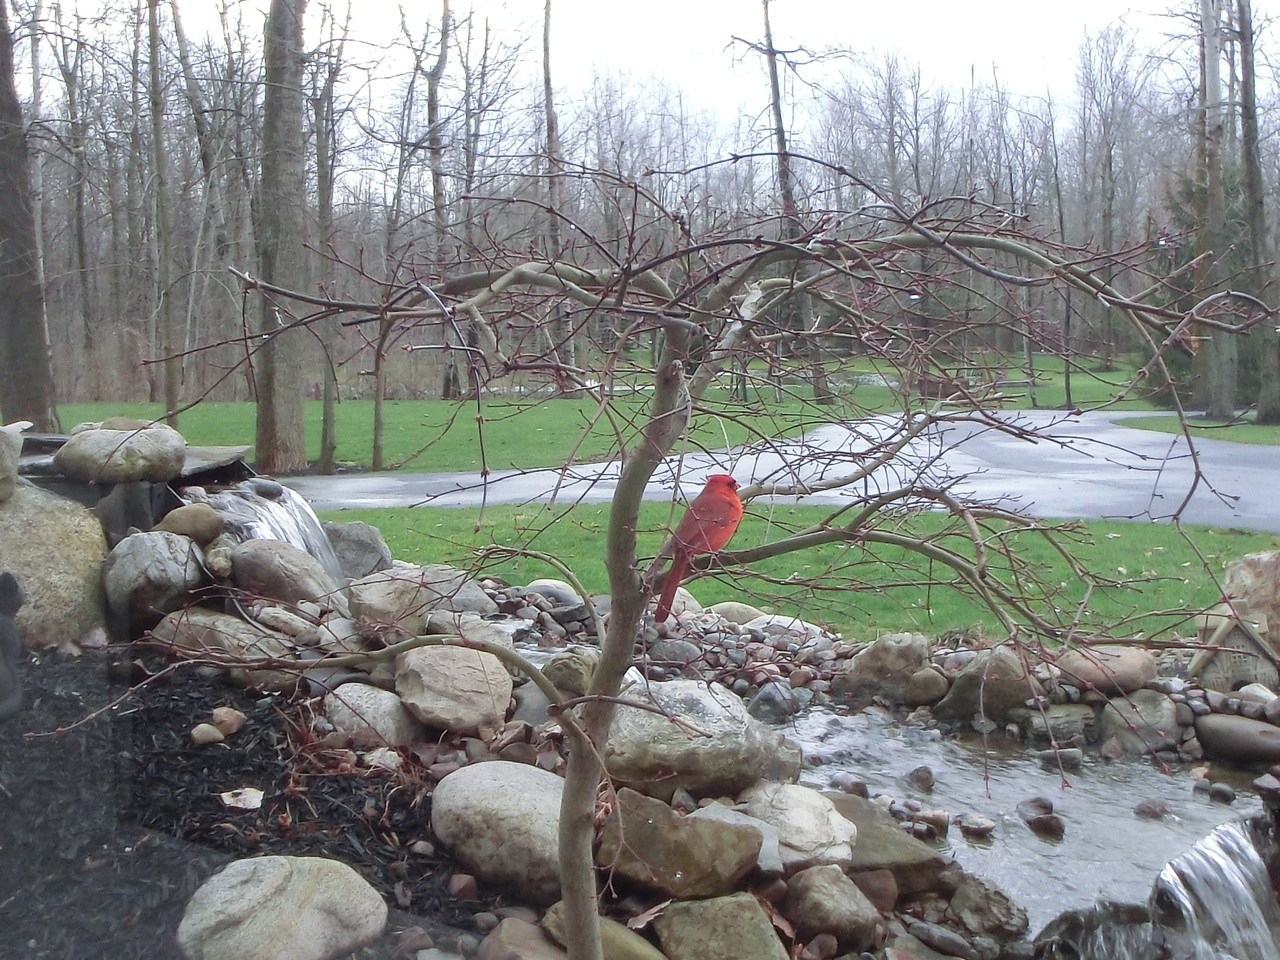 Looking Out Our Bedroom Window Was A Beautiful Cardinal